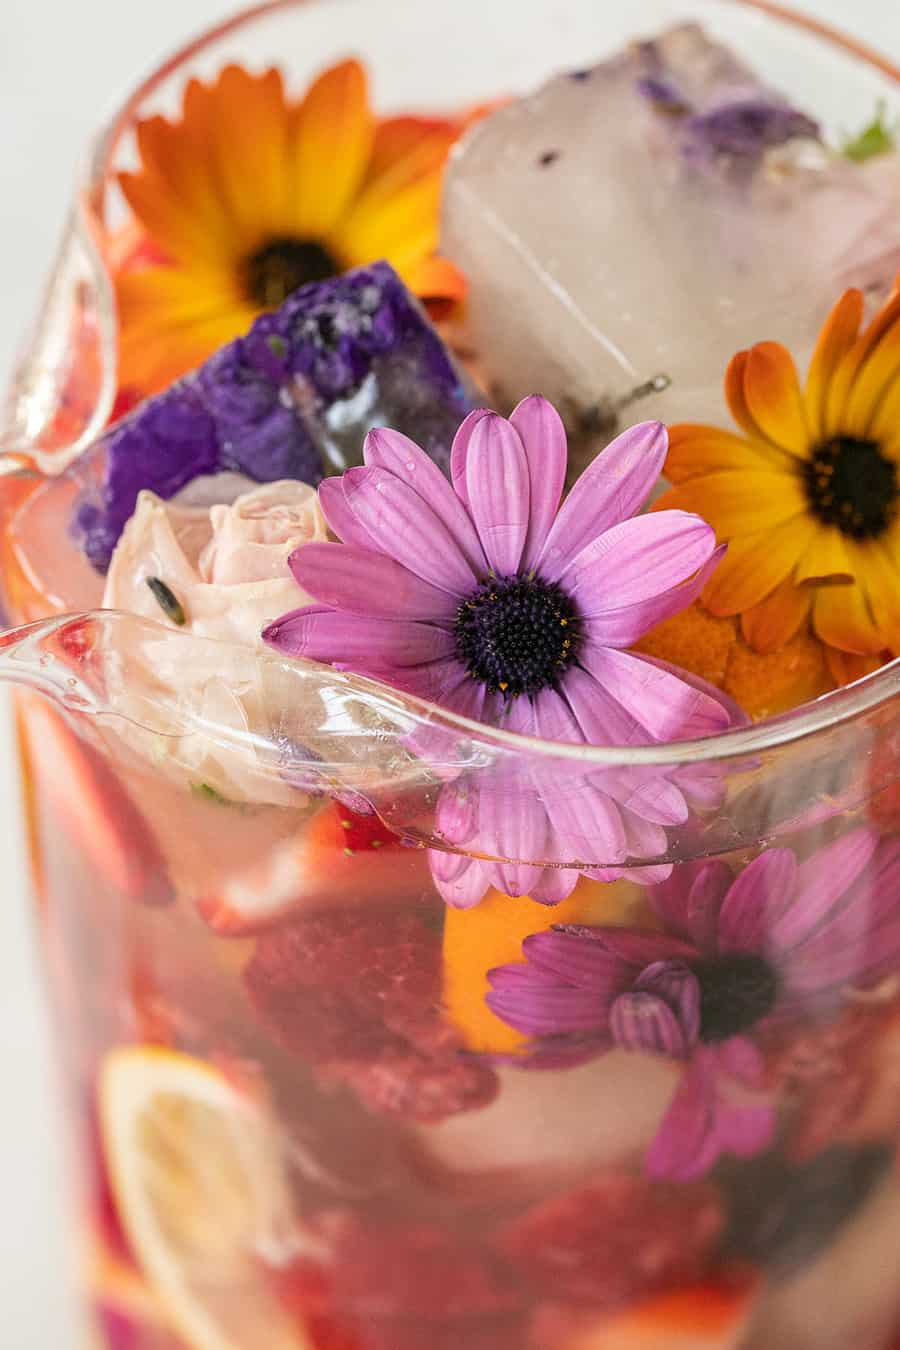 Edible flowers in sangria